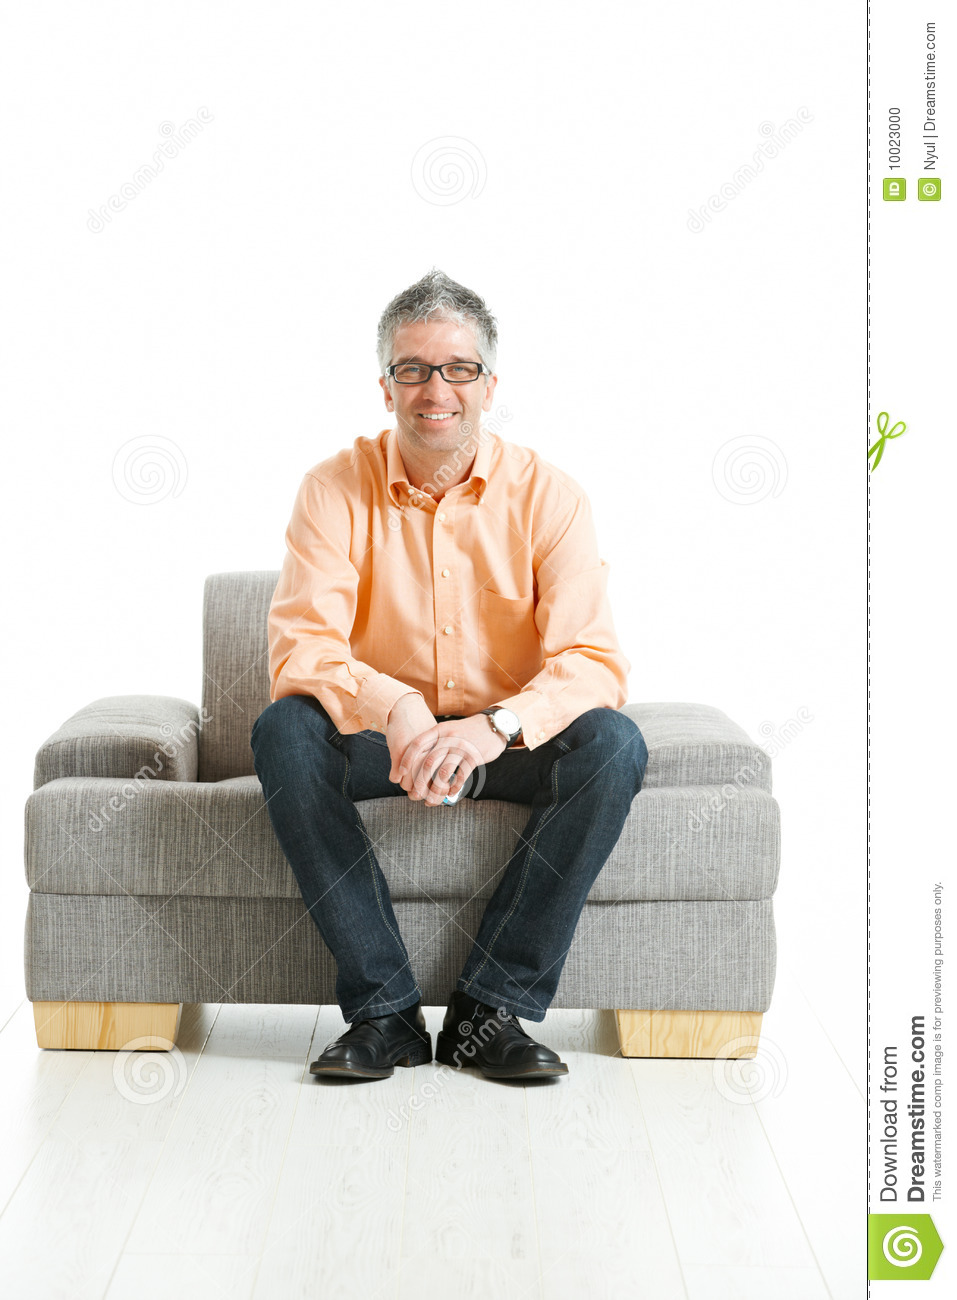 Man Sitting On Couch Stock Photo - Image: 10023000